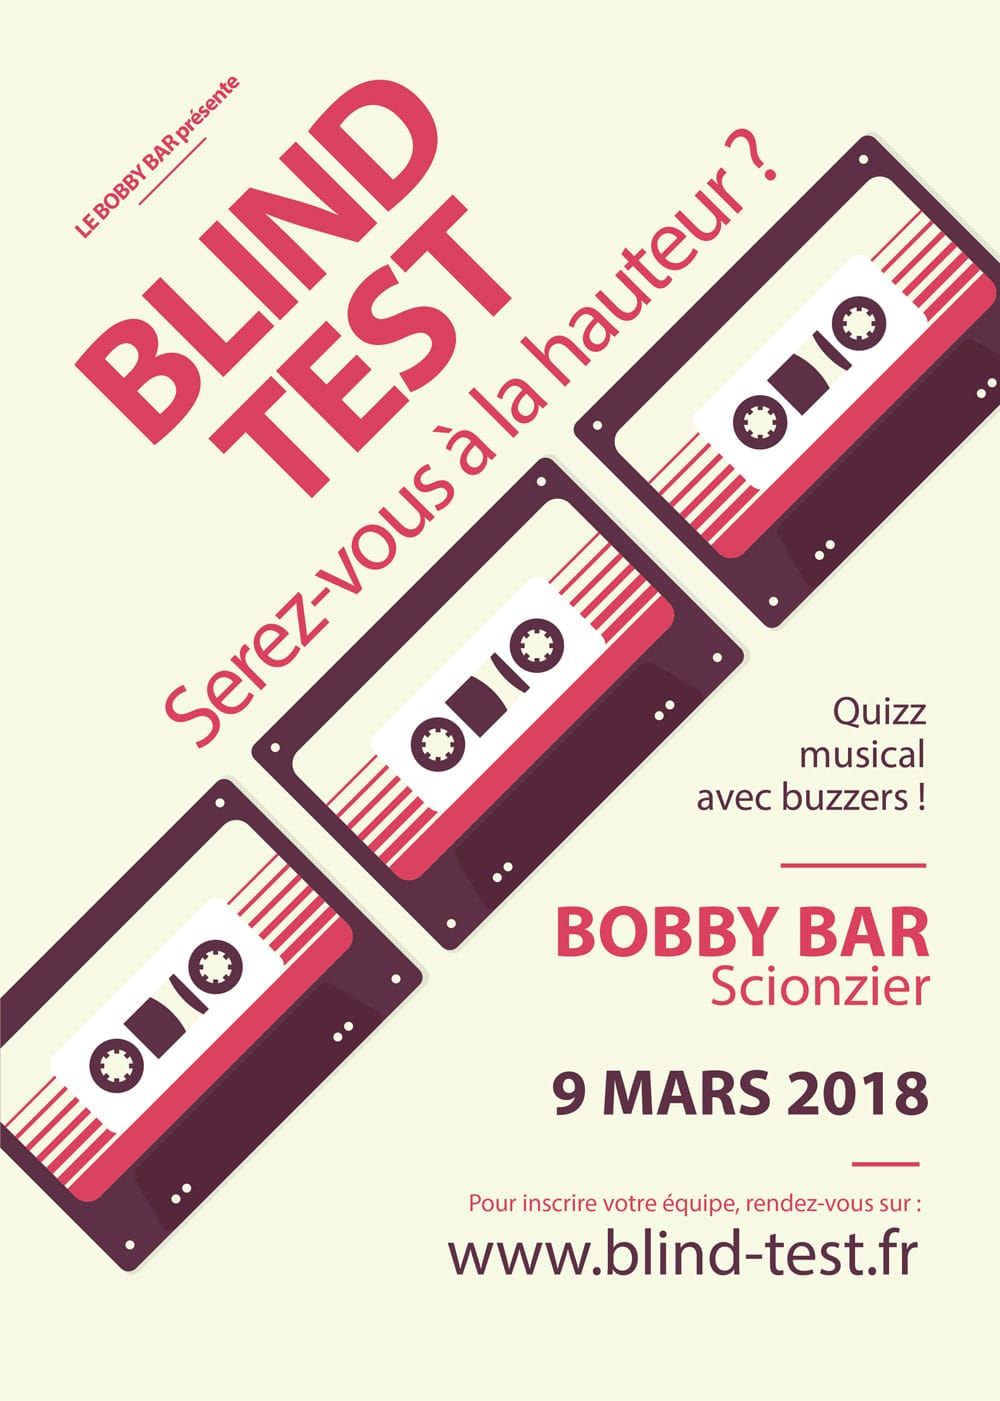 Blind test bobby bar